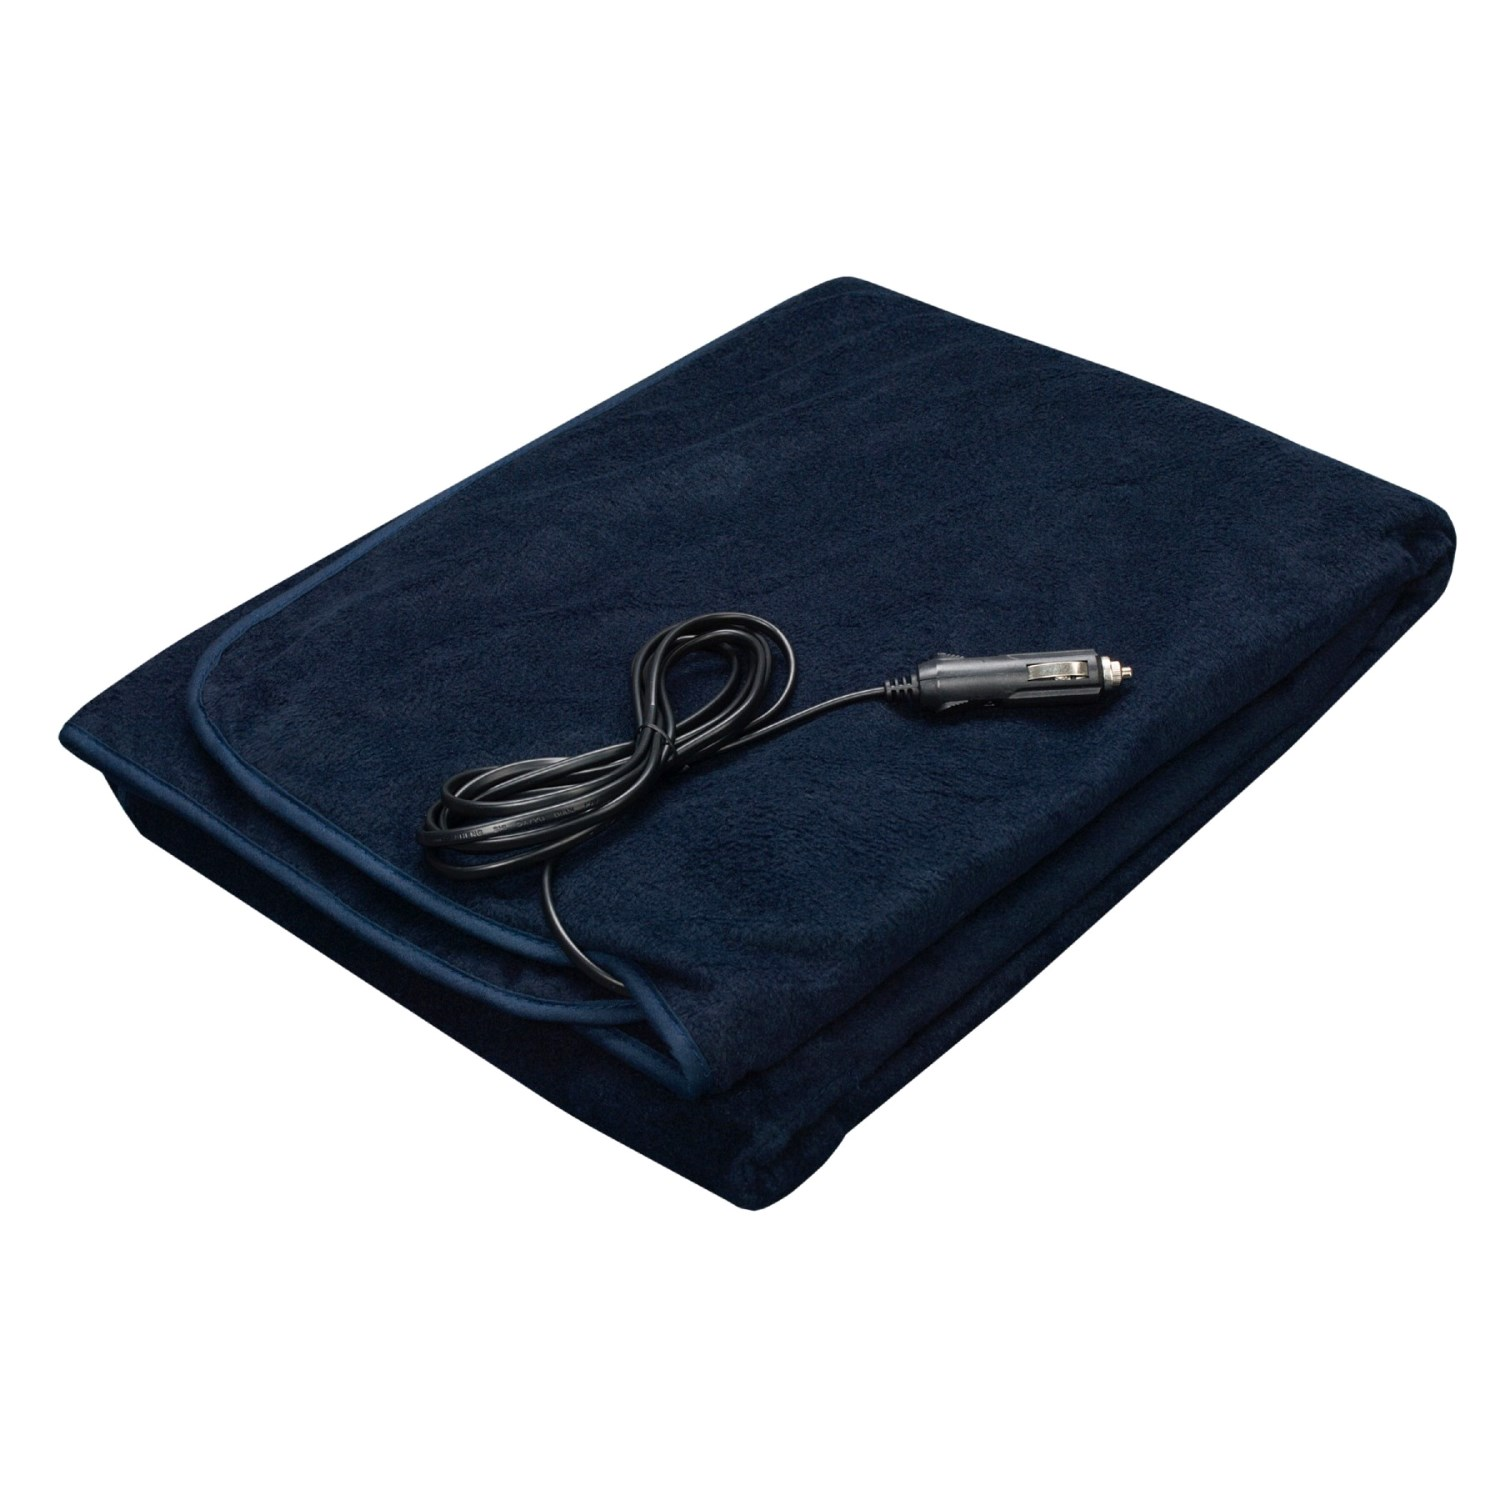 Wagan Heated Travel Throw Blanket 98849 Save 30